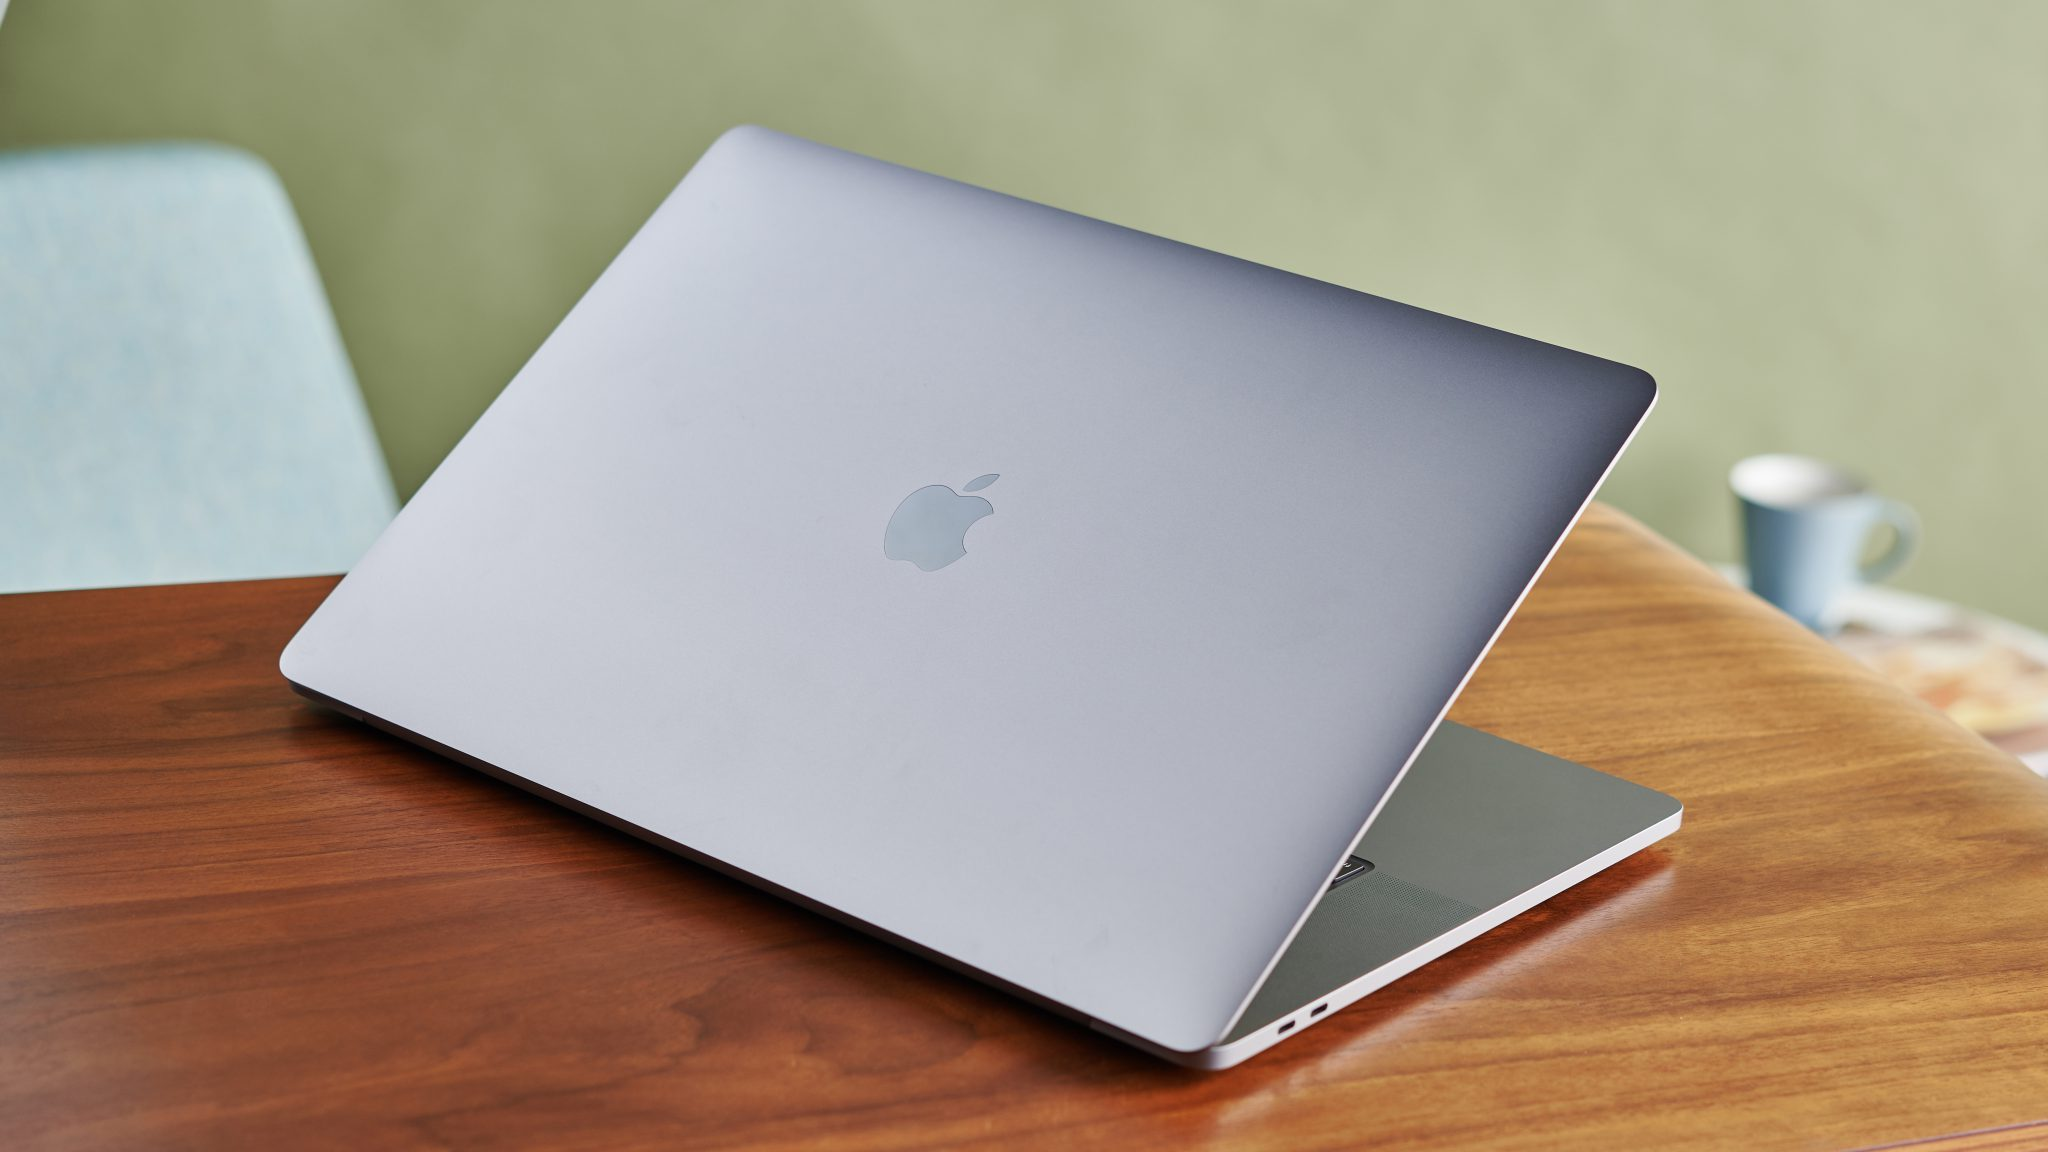 Apple Could Launch Macbook Air In 2021 iMac Colors With ...